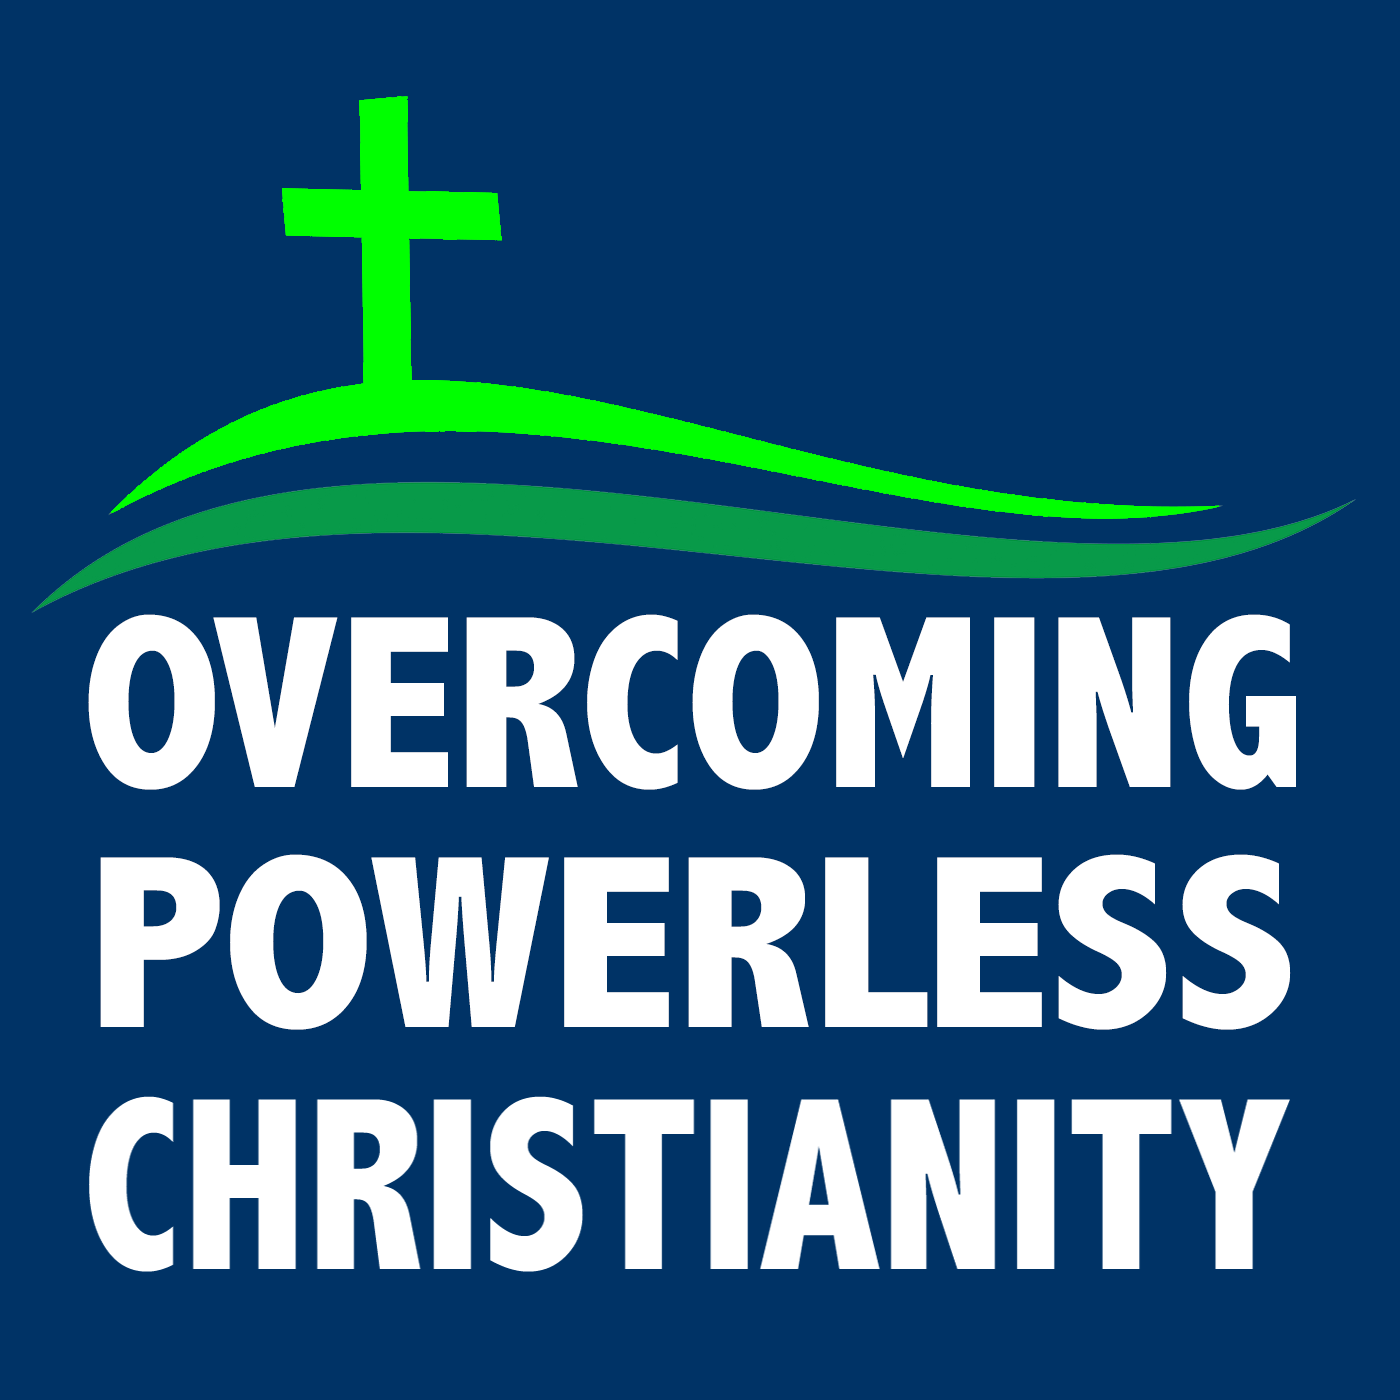 Overcoming Powerless Christianity